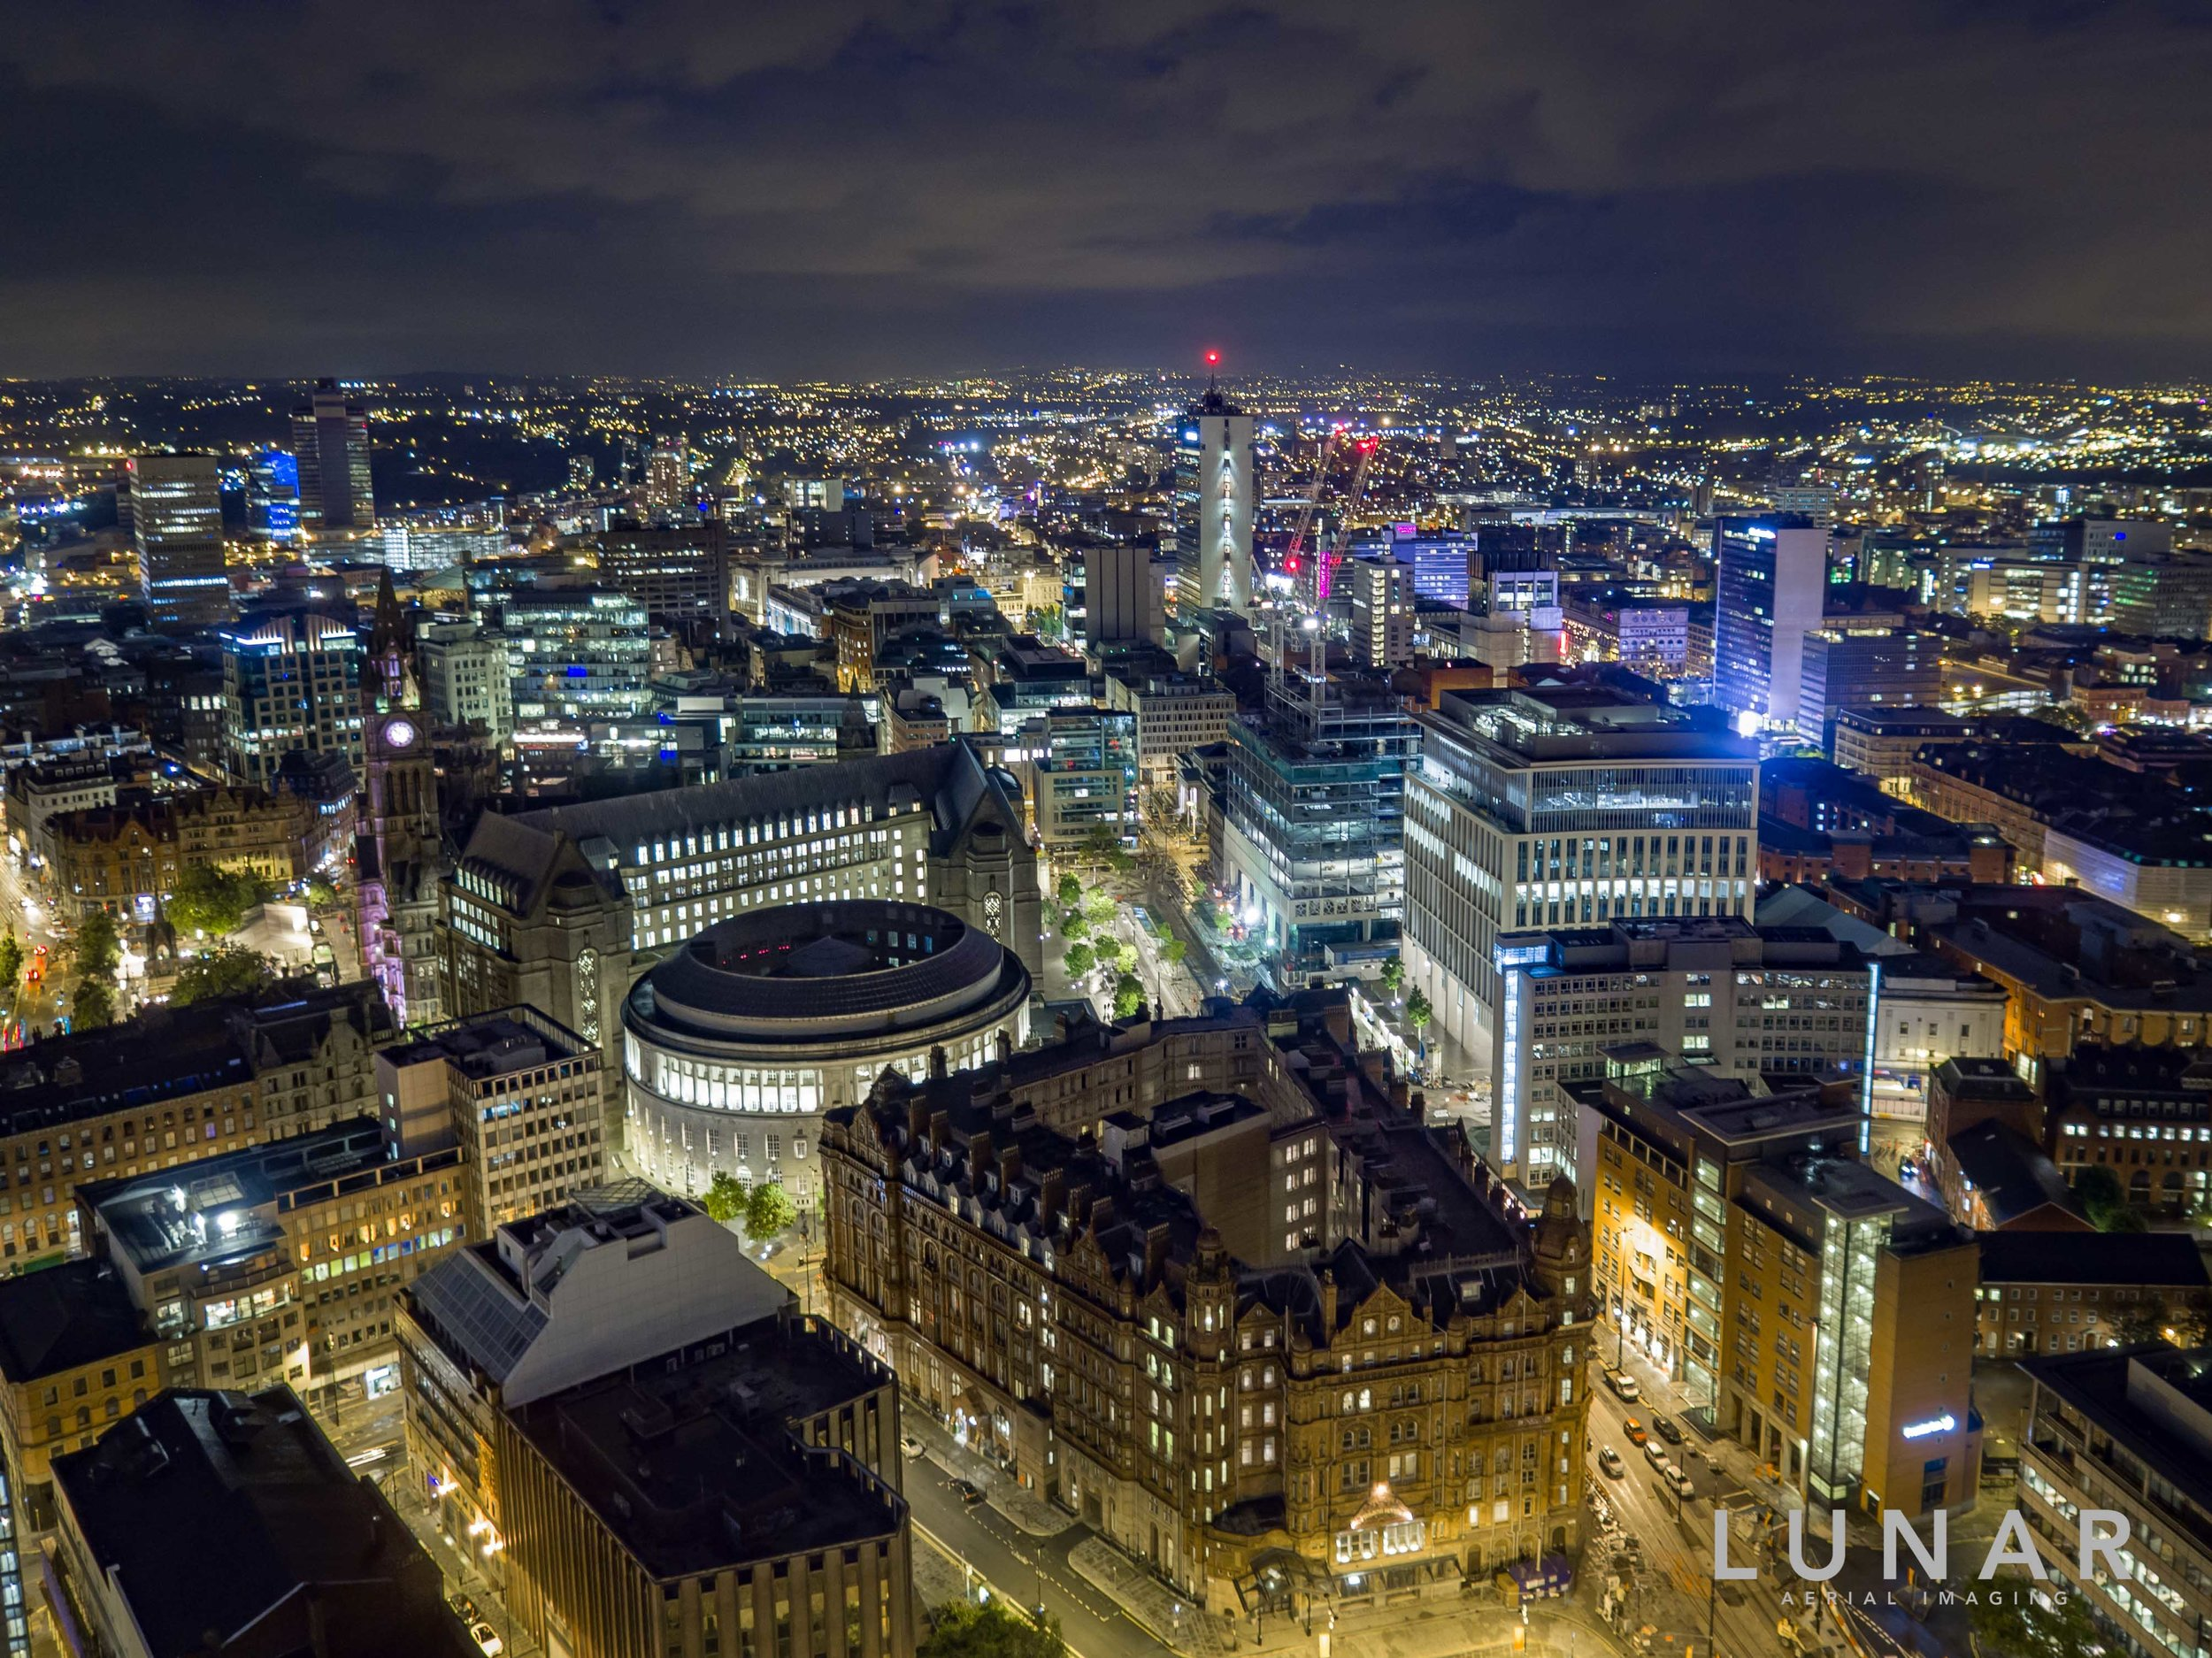 night aerial cityscape of Manchester Central